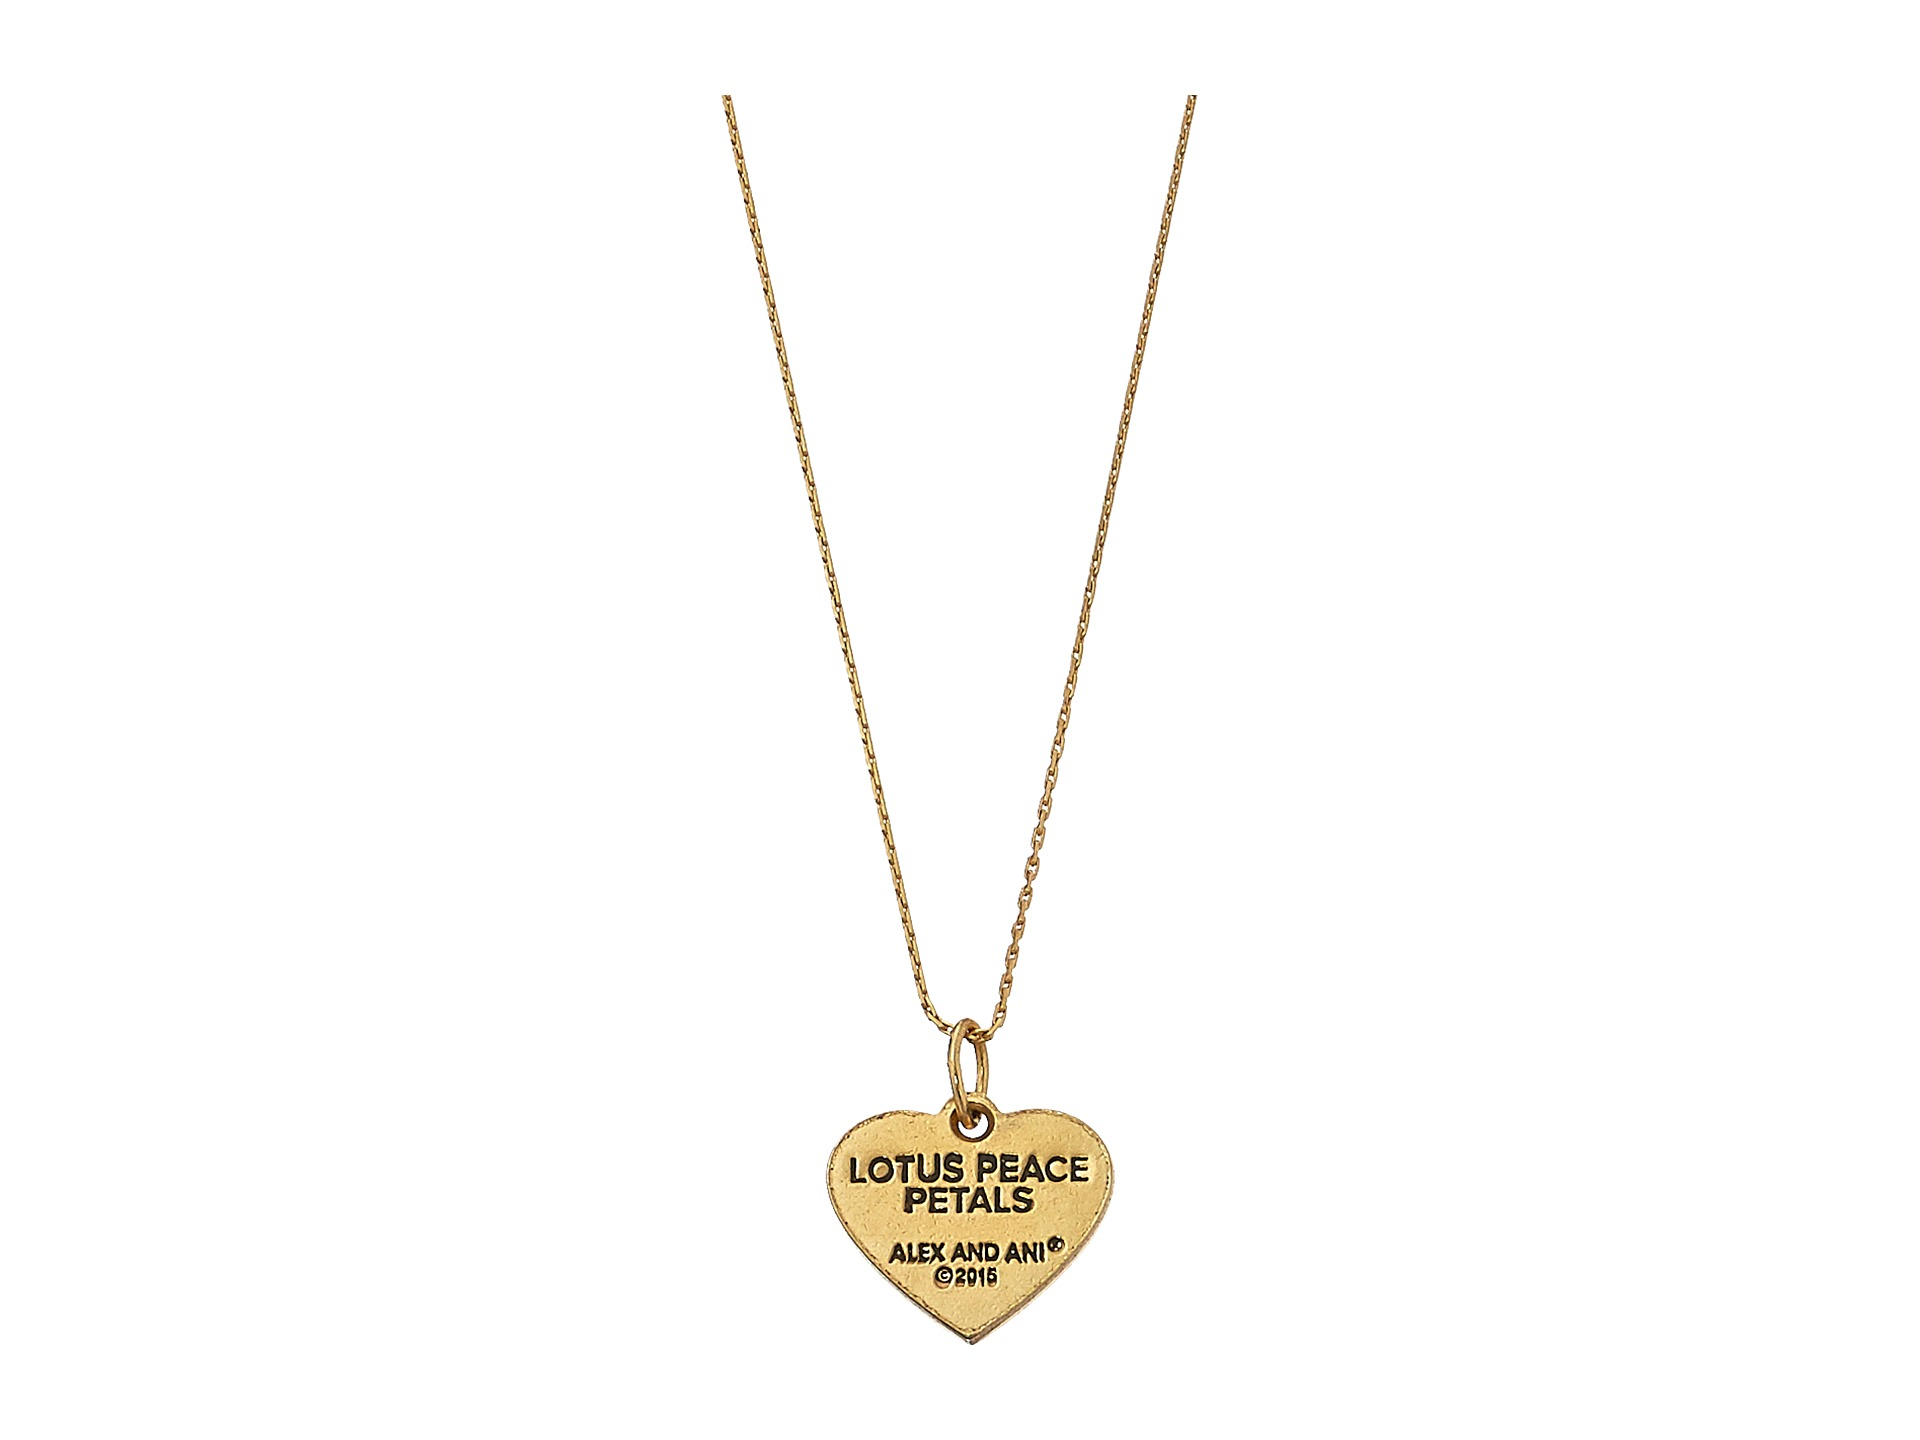 Alex And Ani Lotus Peace Petal Heart Expandable Necklace In Metallic